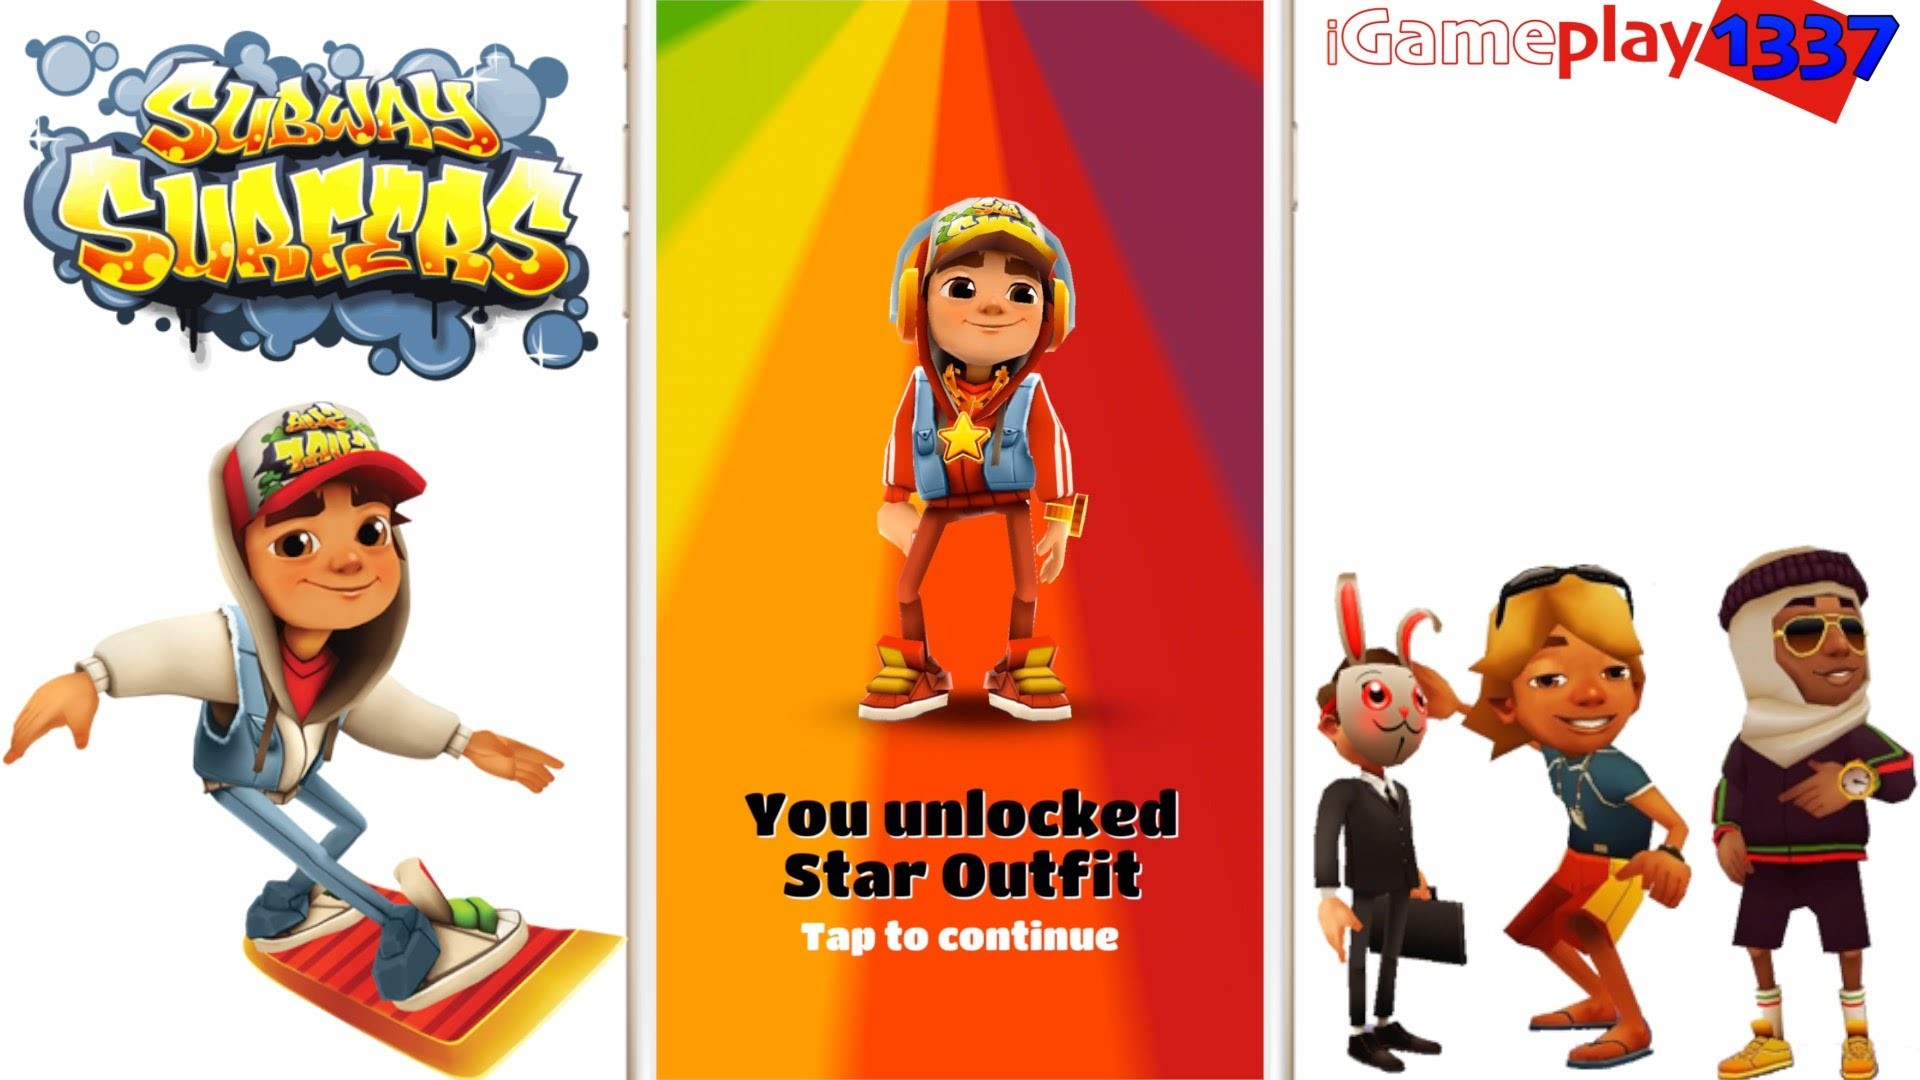 Subway Surfers – JAKE STAR OUTFIT Character – Review / Gameplay – YouTube